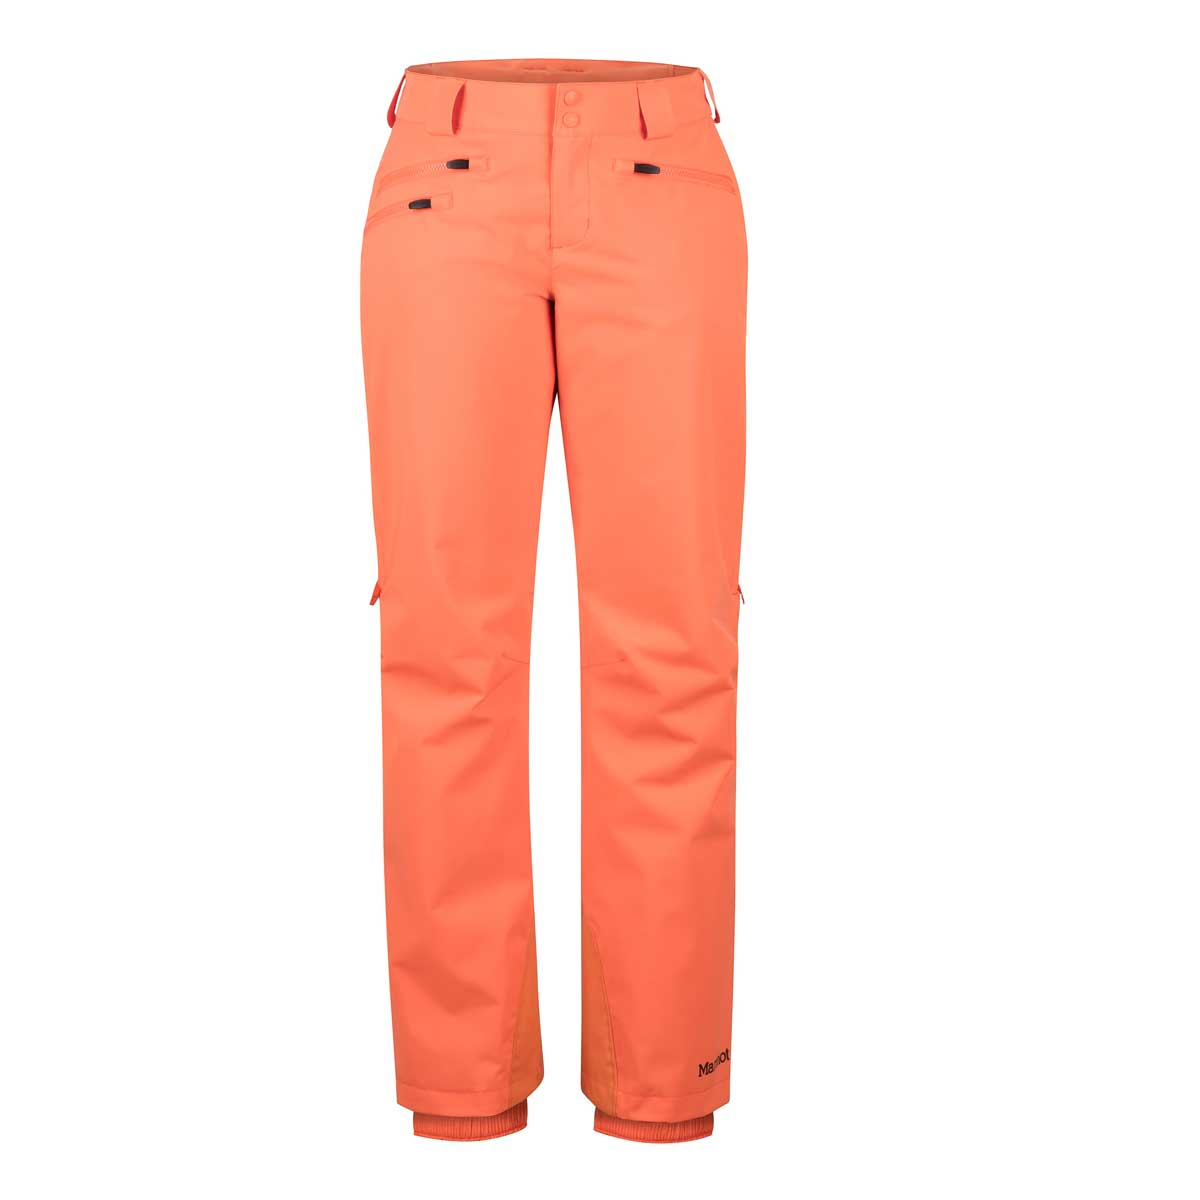 Marmot Women's Slopestar Pant in Nasturtium